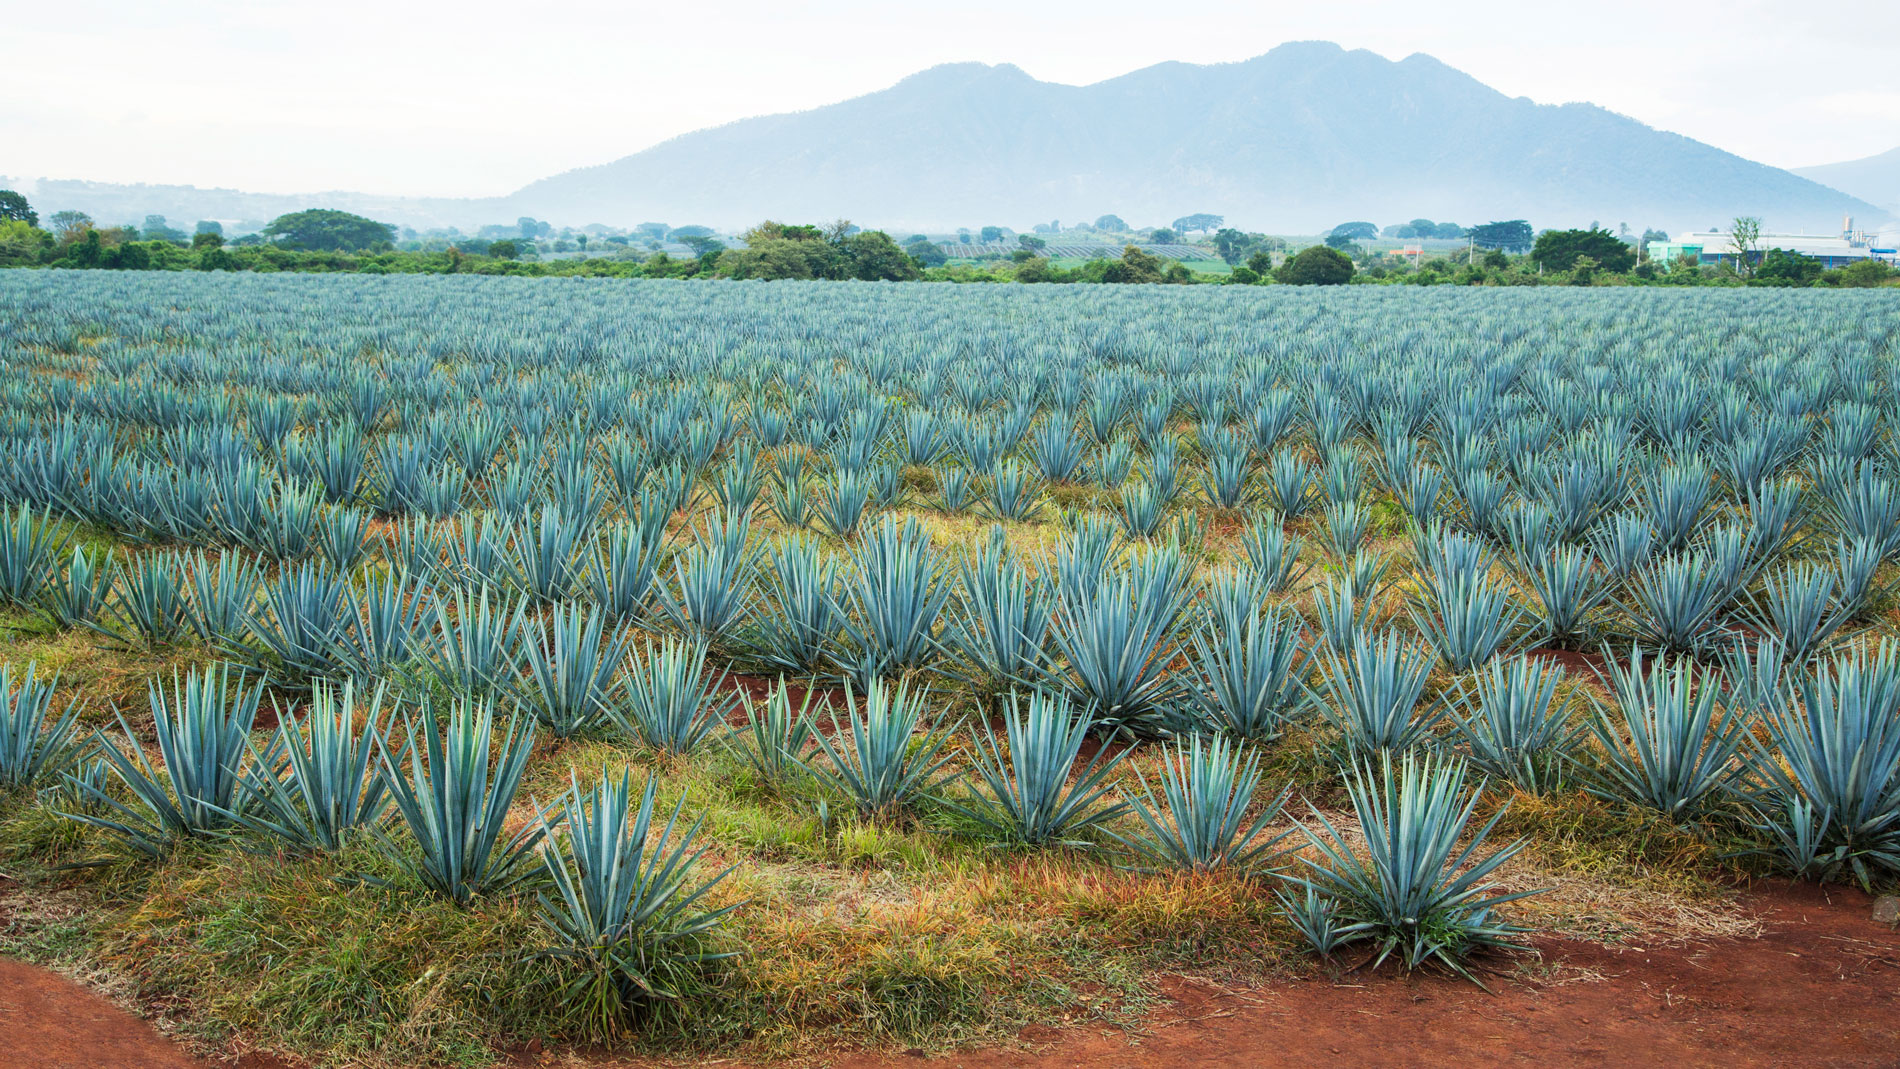 10 Terms Every Tequila Drinker Should Know